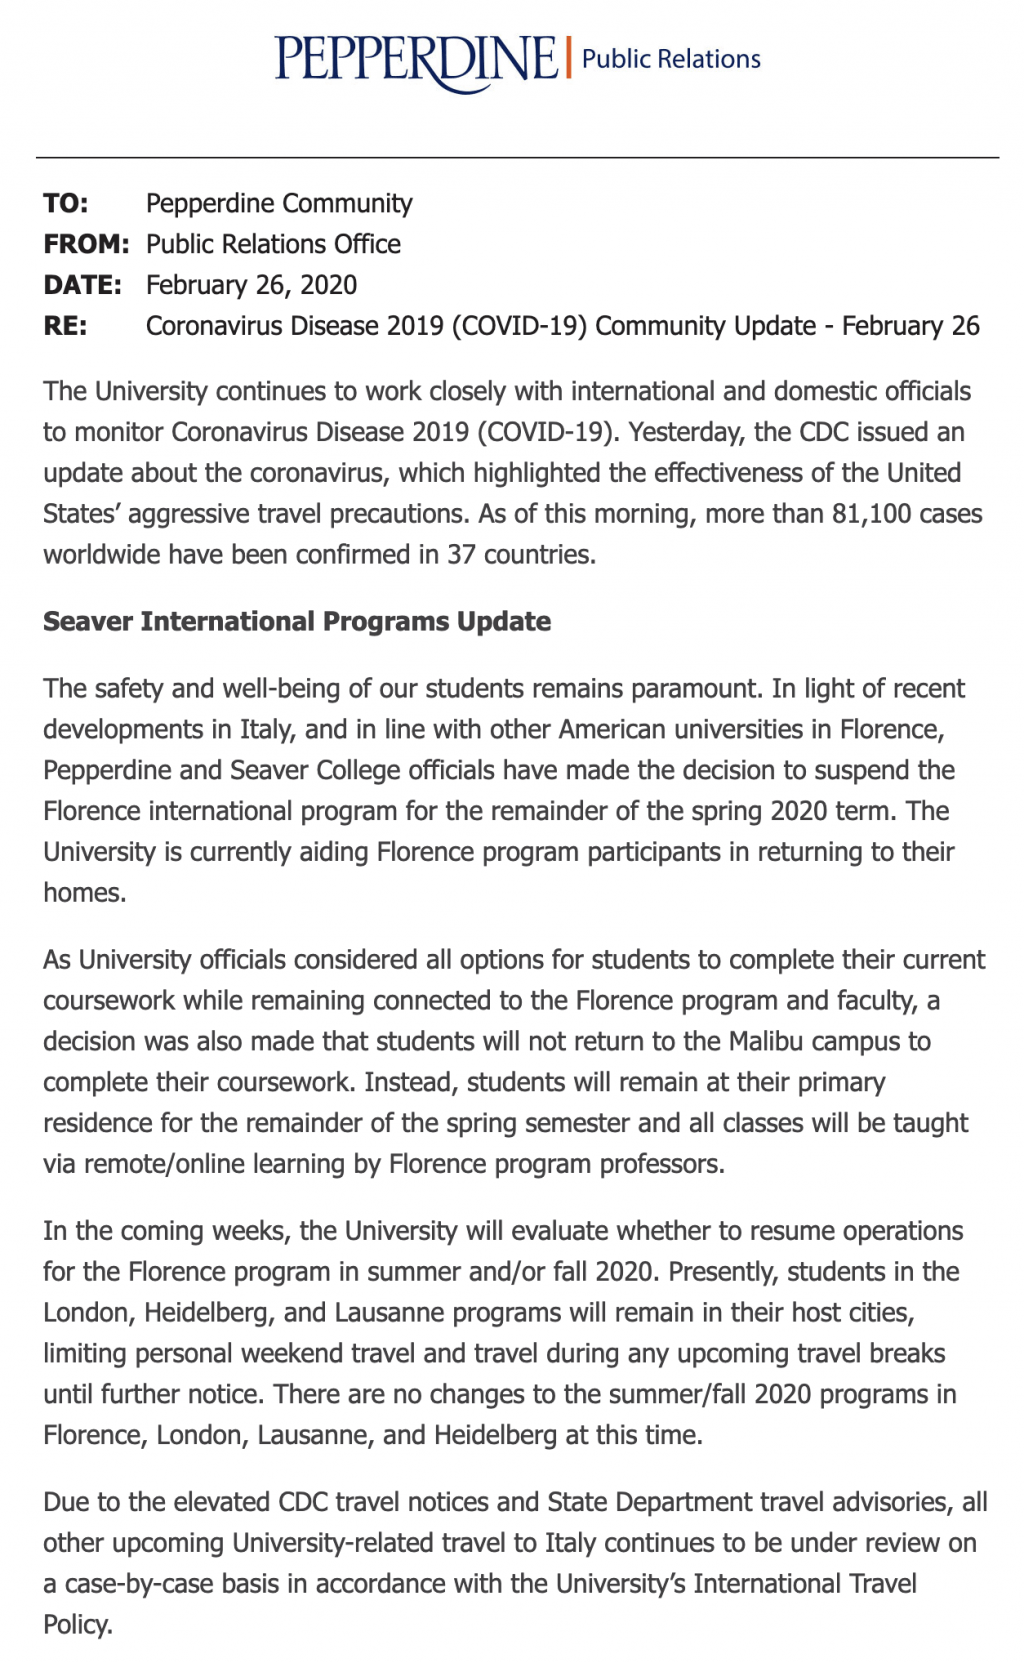 The Pepperdine press release sent to the entire university Feb. 26 regarding updates to Pepperdine abroad programs.